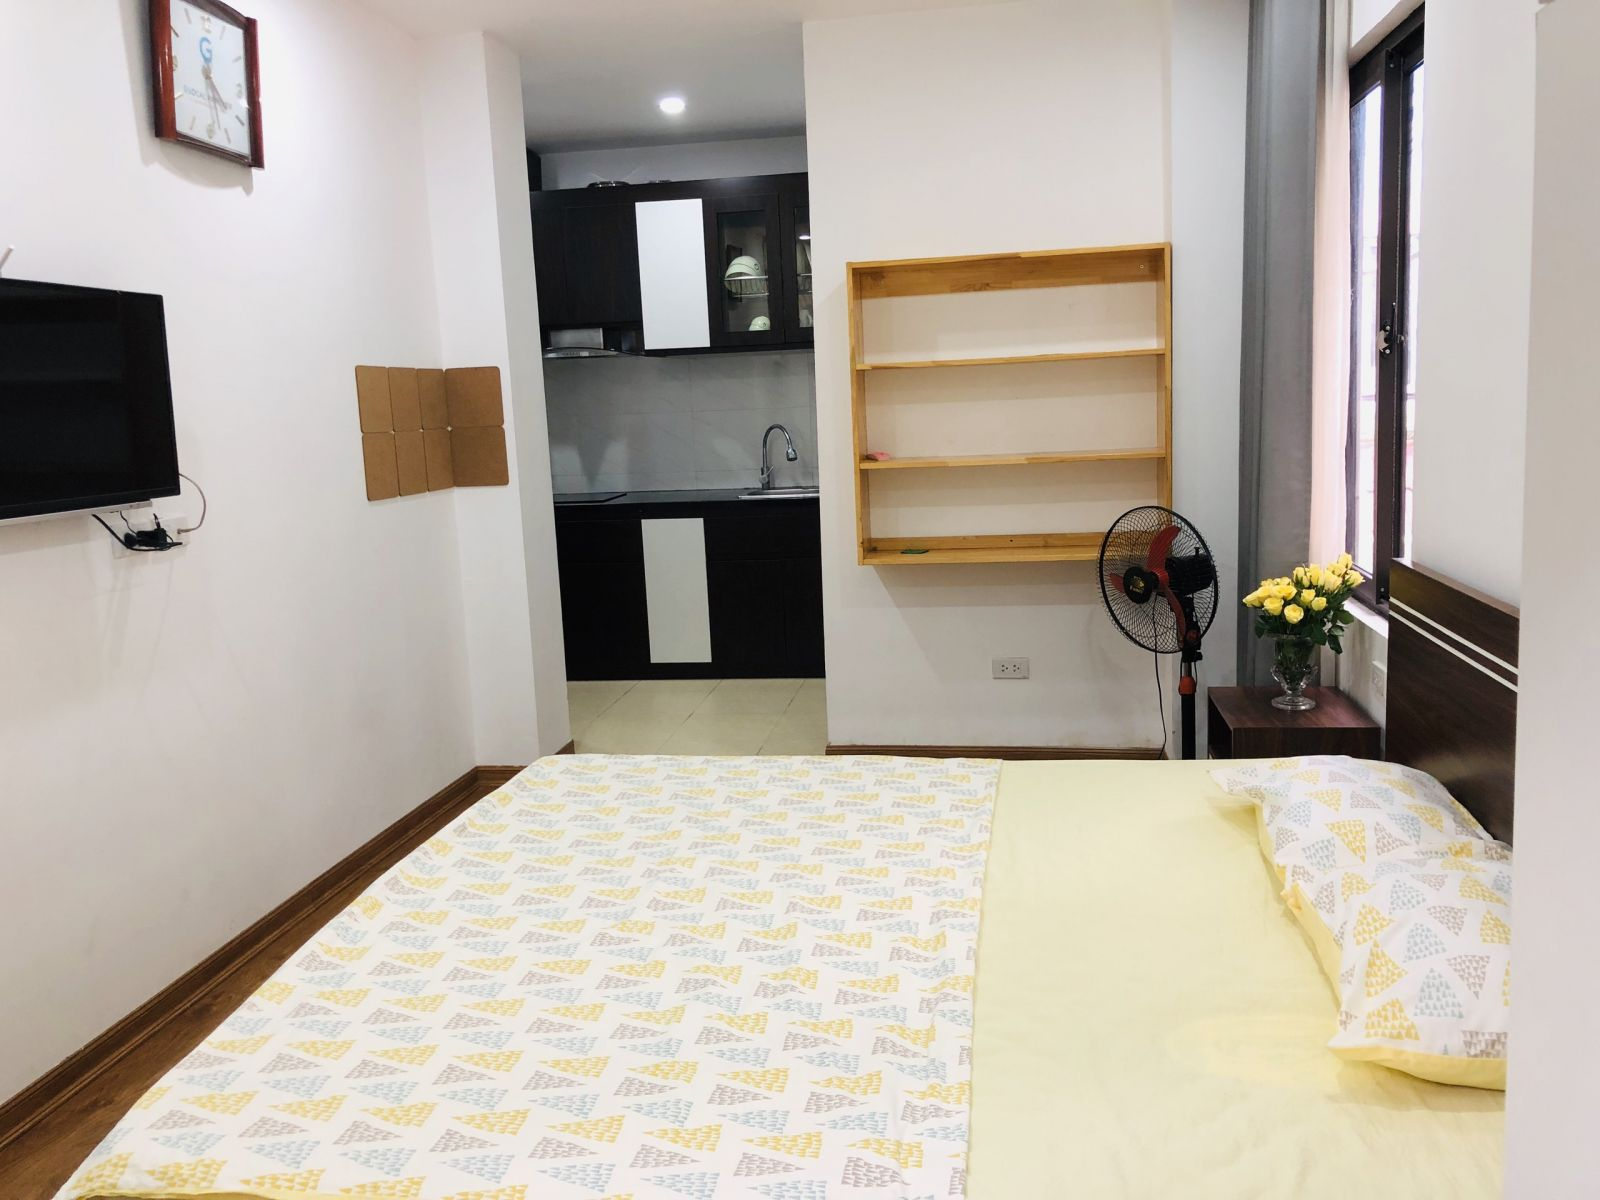 Studio room for rent with balcony and window of natural light at To Ngoc Van, Tay Ho District.